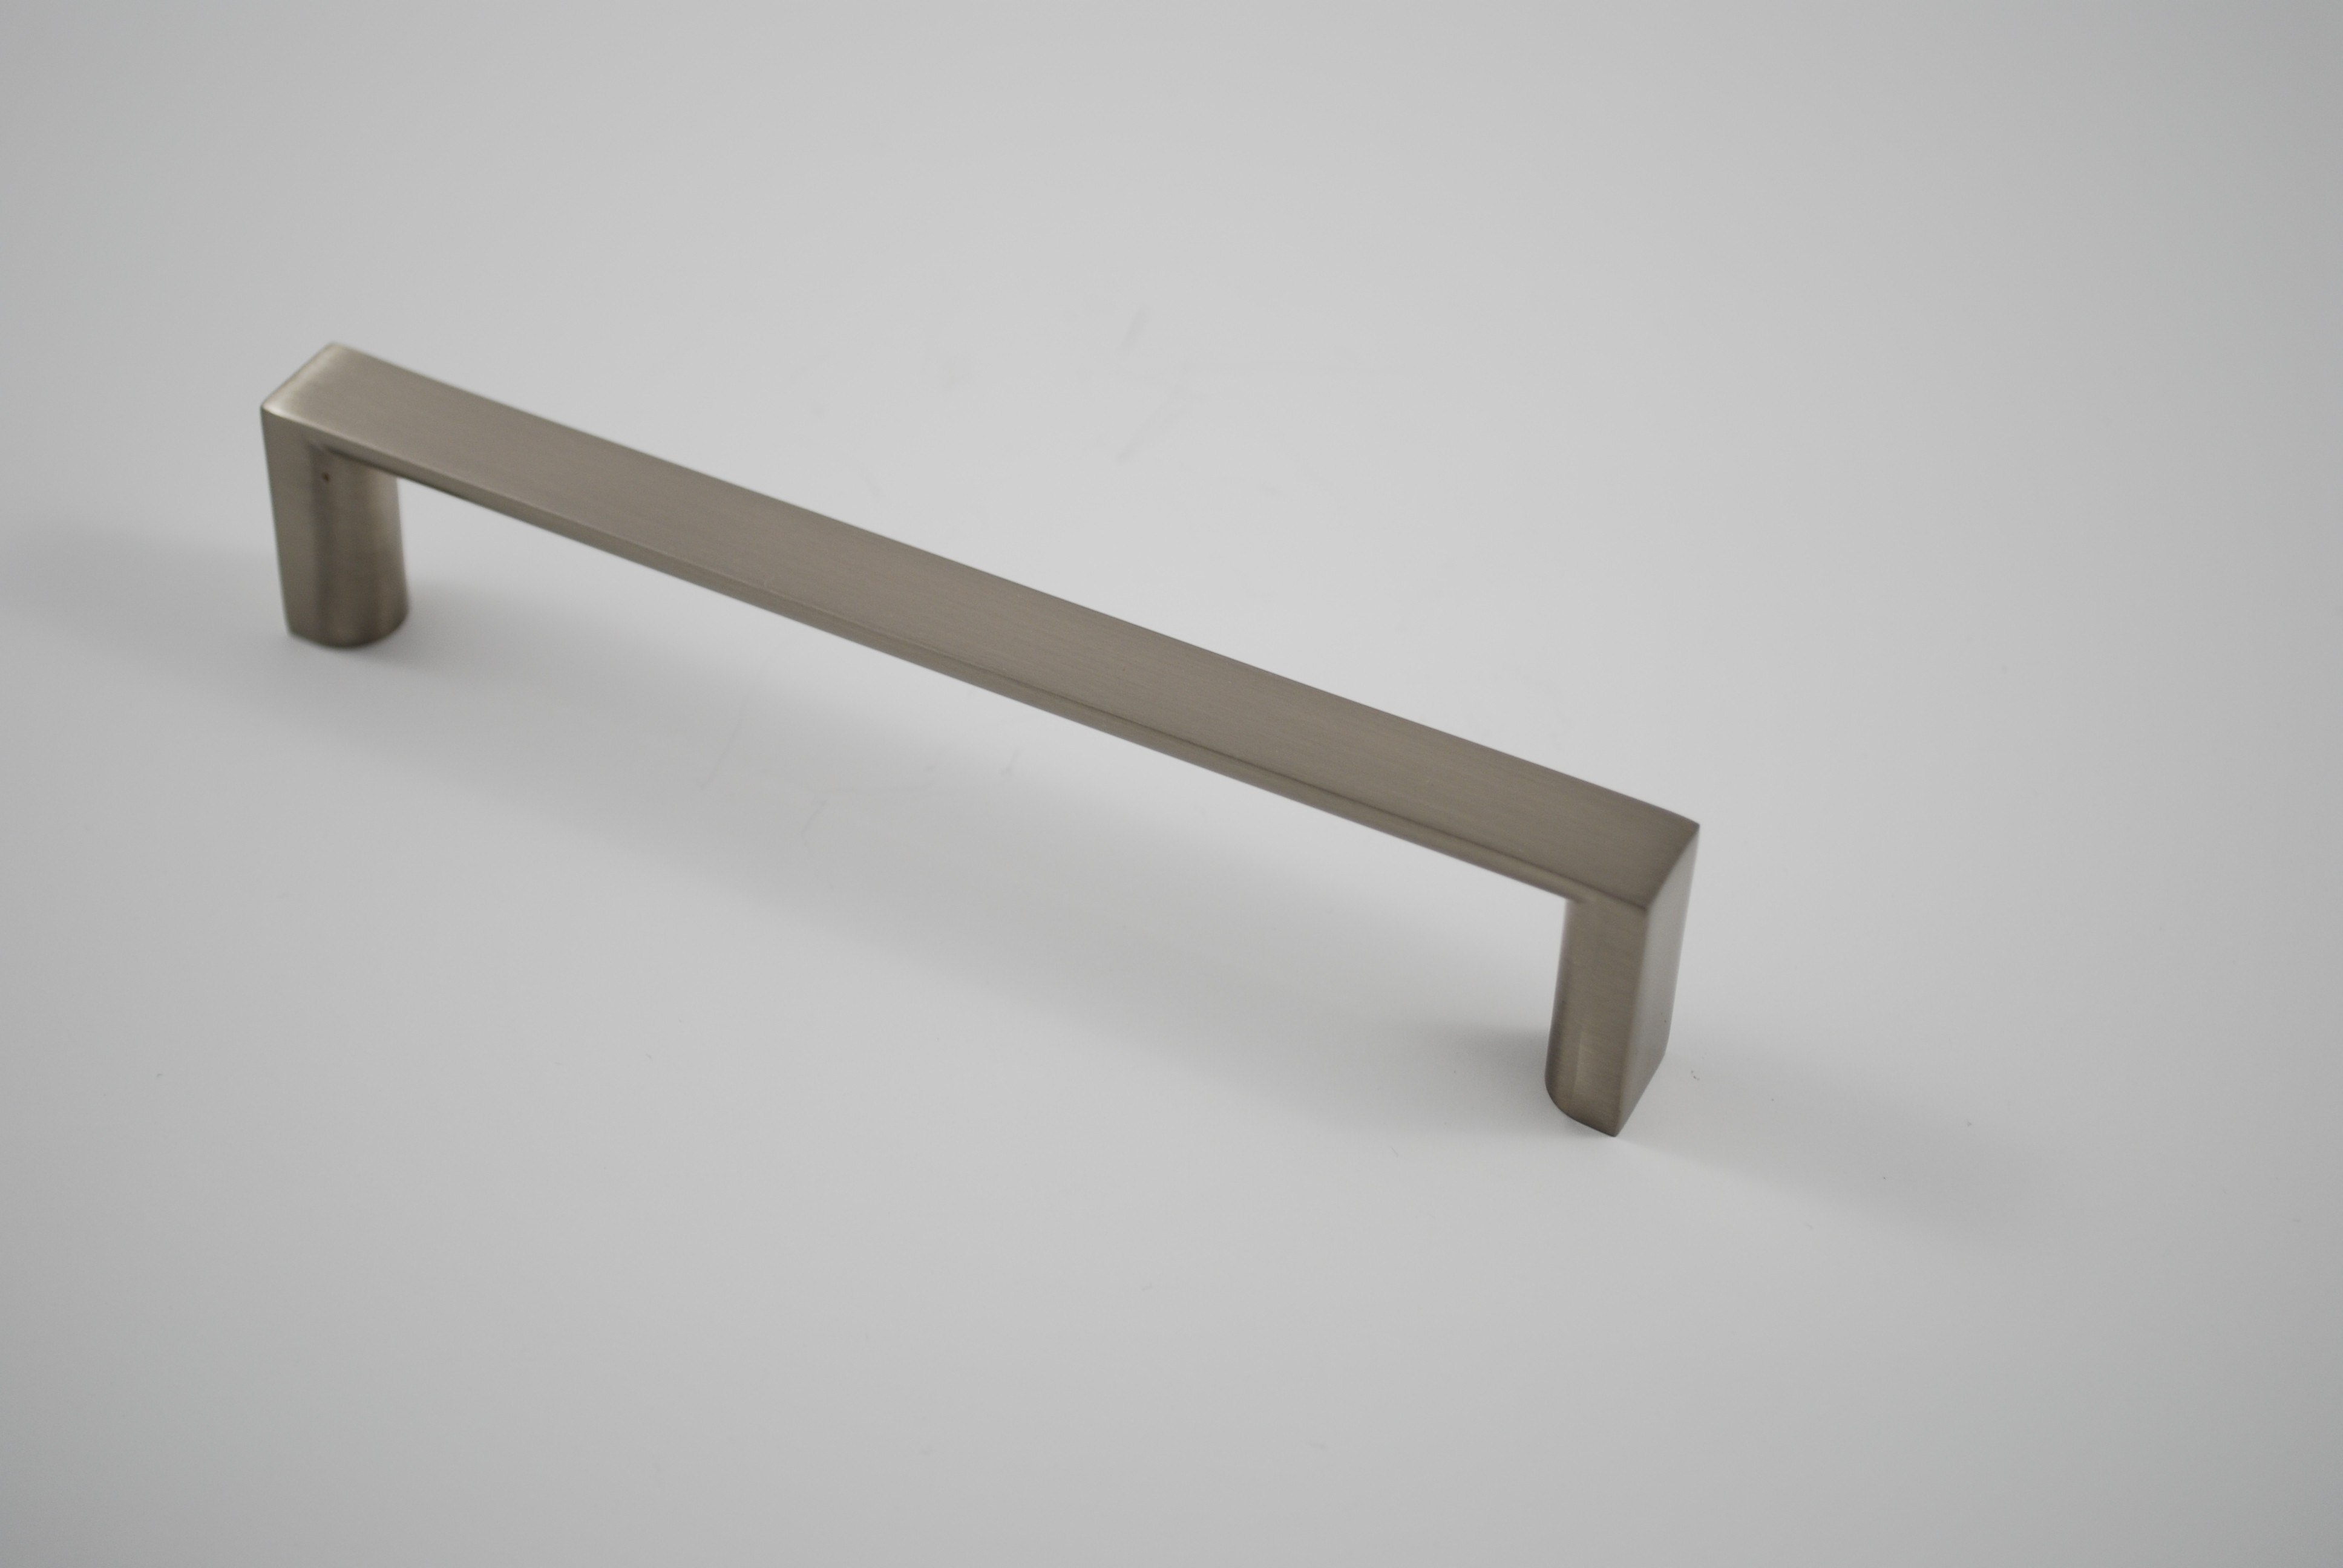 RESIDENTIAL ESSENTIALS 10281 CABINET PULL